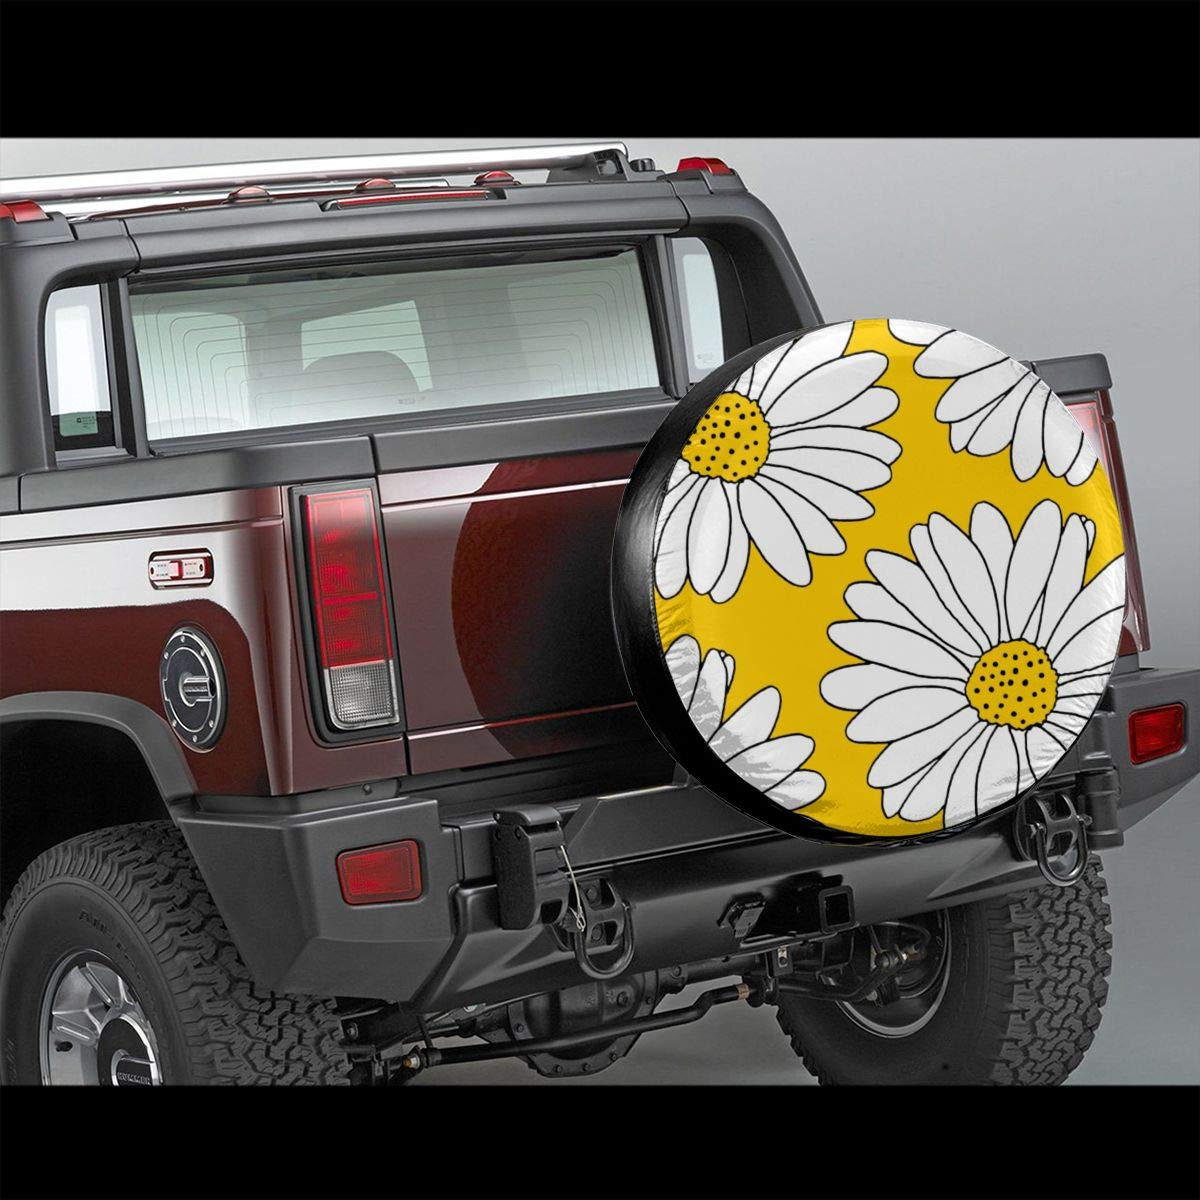 SUV Trailer Accessories15(Diameter 27-29 Becmd Yellow and White Daisies Universal Spare Wheel Tire Cover Fit for Truck Camper Van,Jeep,Trailer RV